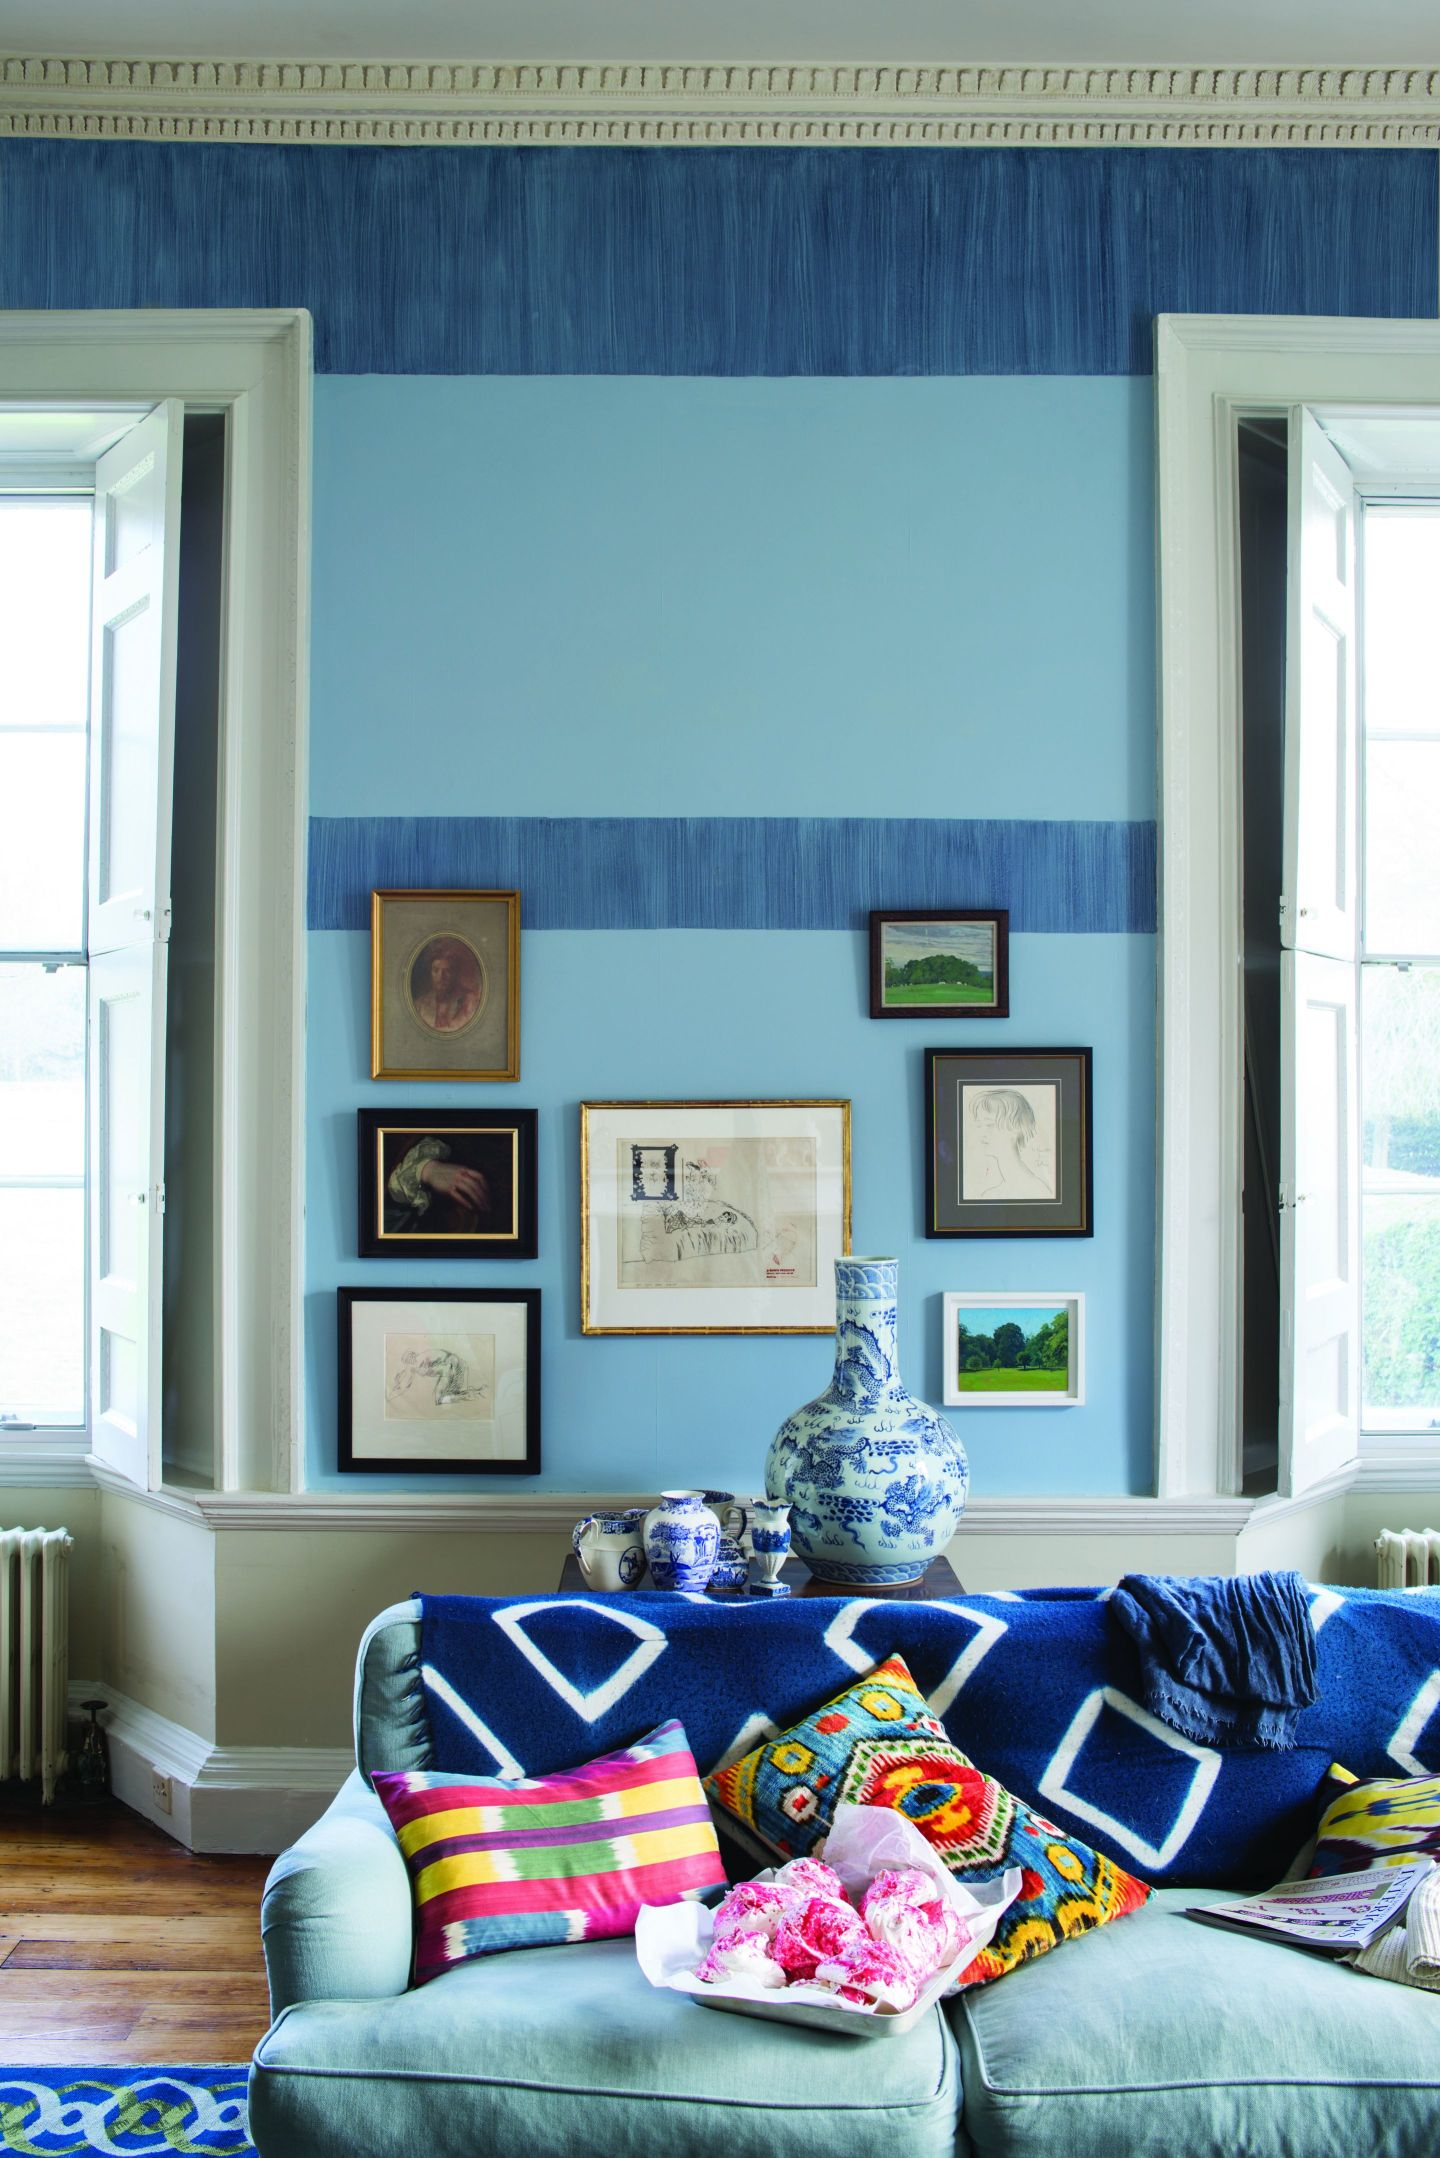 FarrowBall_1182390_PitchBlueandLulworthBlueLivingR.jpg-1440x2158 Paint Inspiration: 20 Colorful Rooms We Love